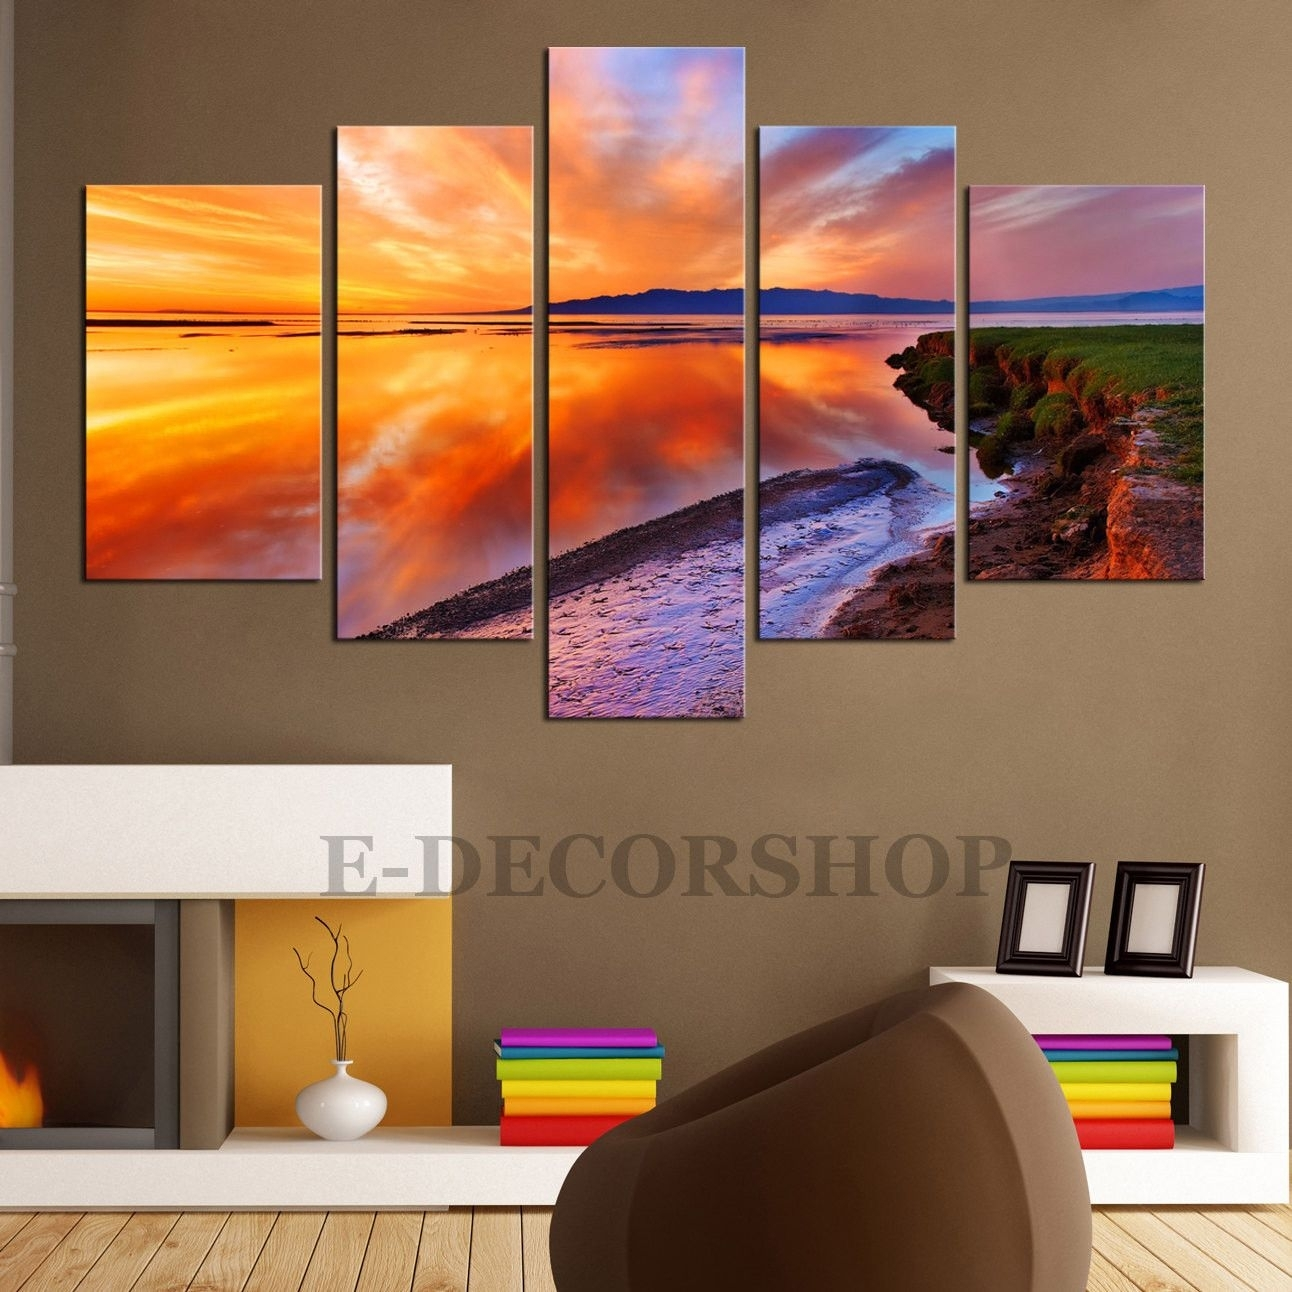 Large Canvas Wall Art – Sunset 5 Piece Canvas Art Print For Home Inside Most Recent Big W Canvas Wall Art (View 7 of 15)